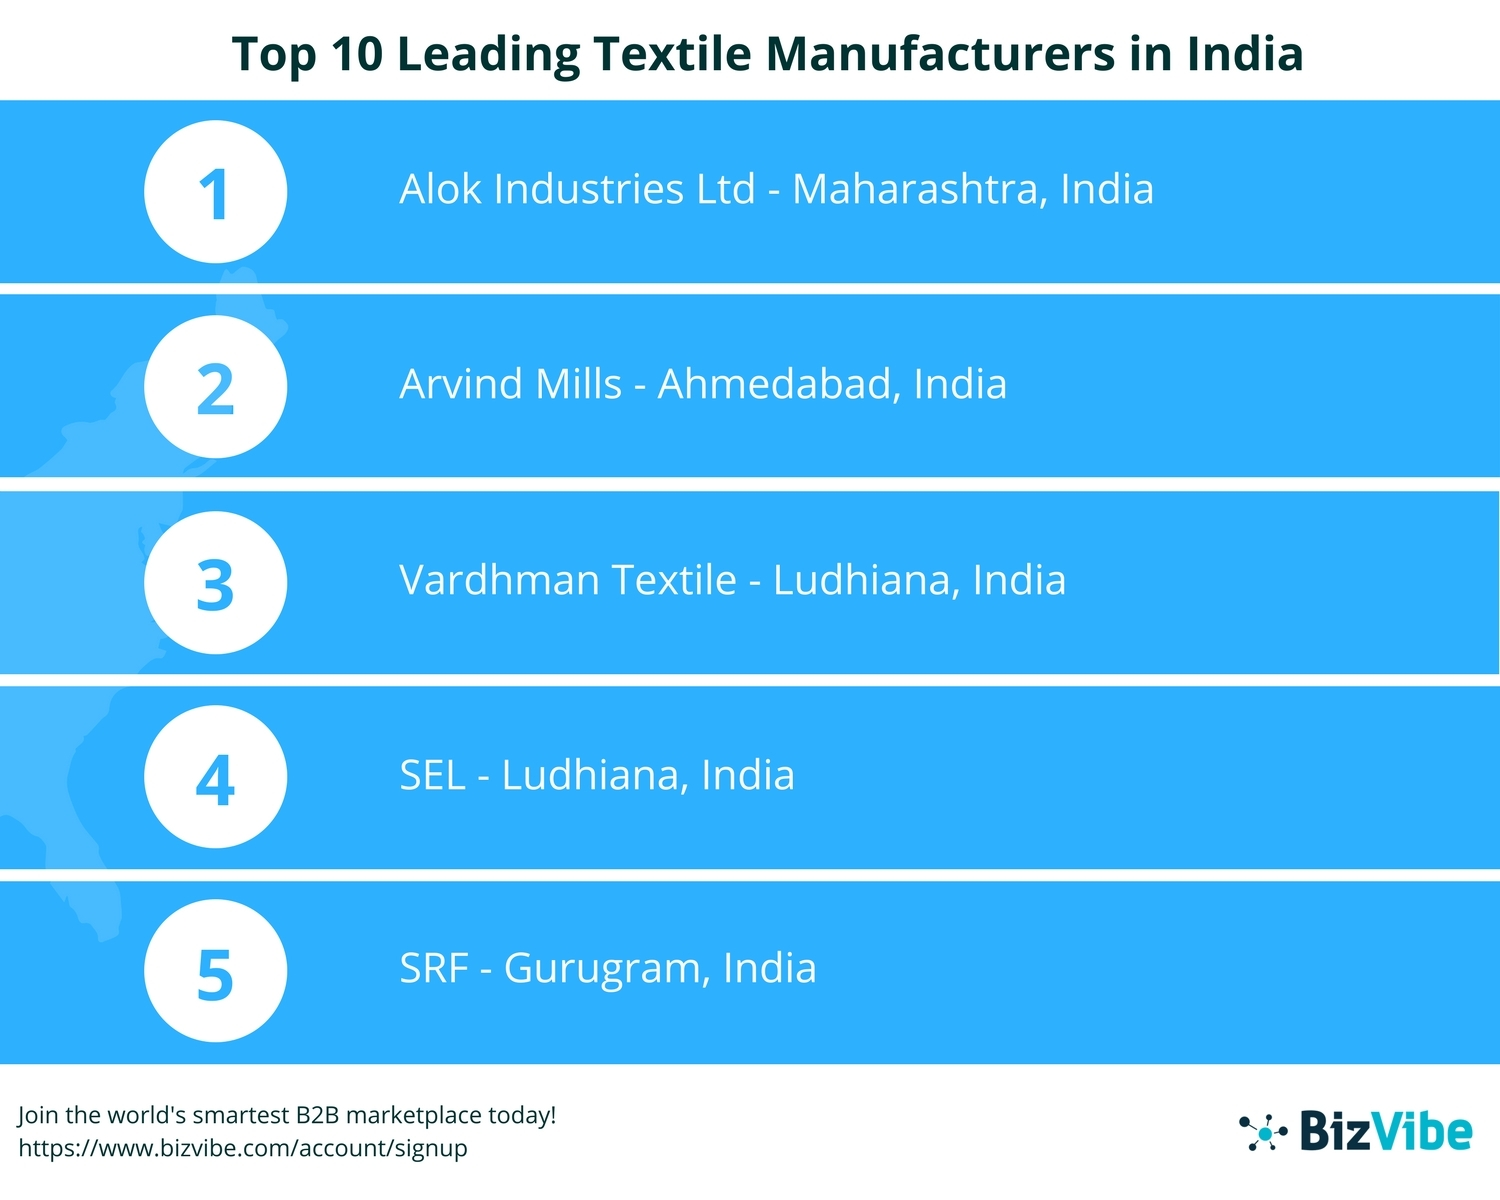 BizVibe Announces Their List of Top 10 Leading Textile Manufacturers